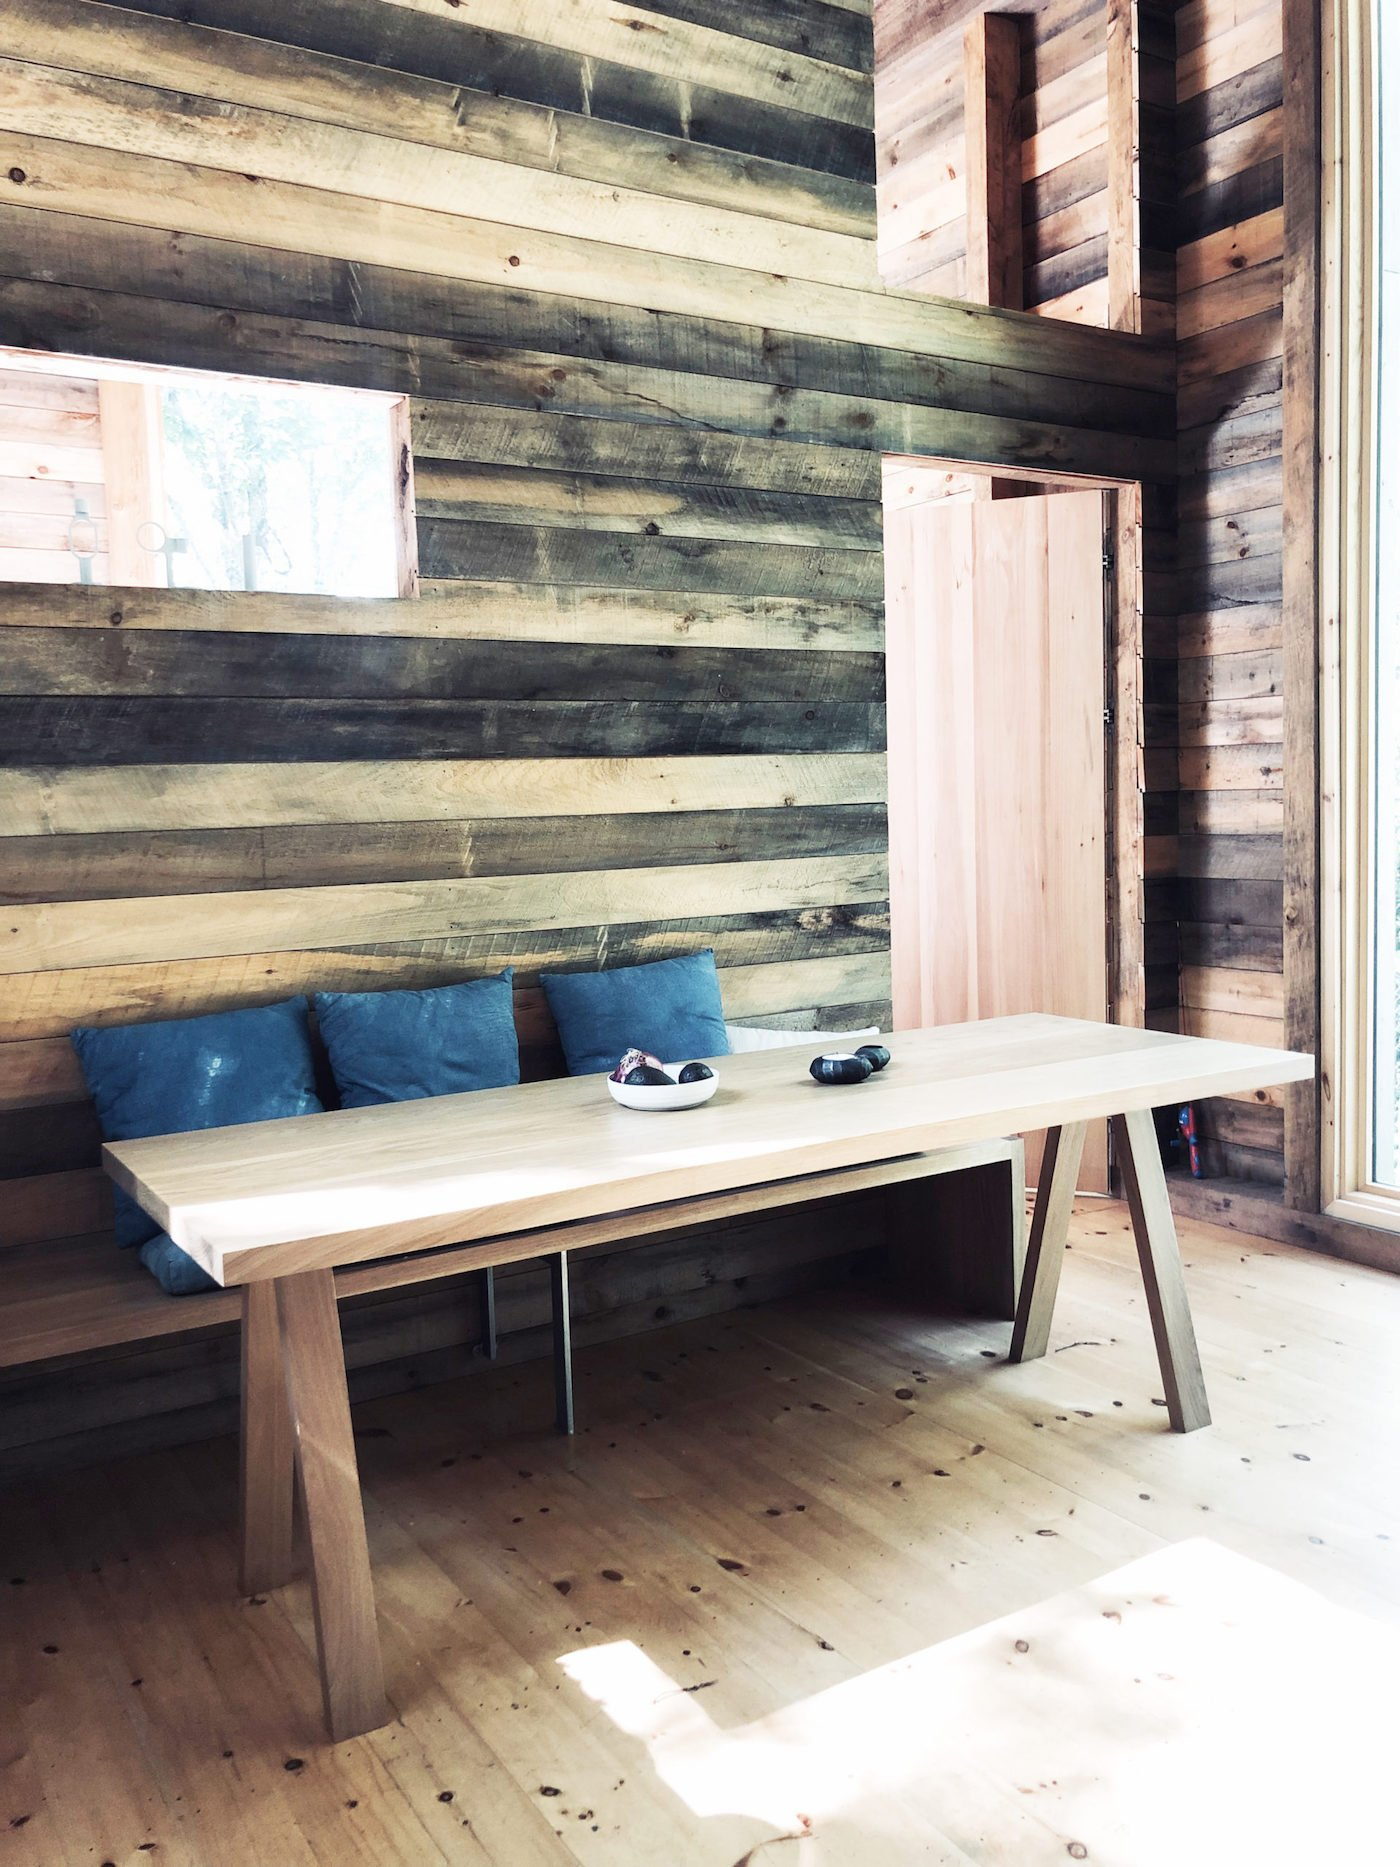 Timber dining table in cabin with timber walls and timber floor